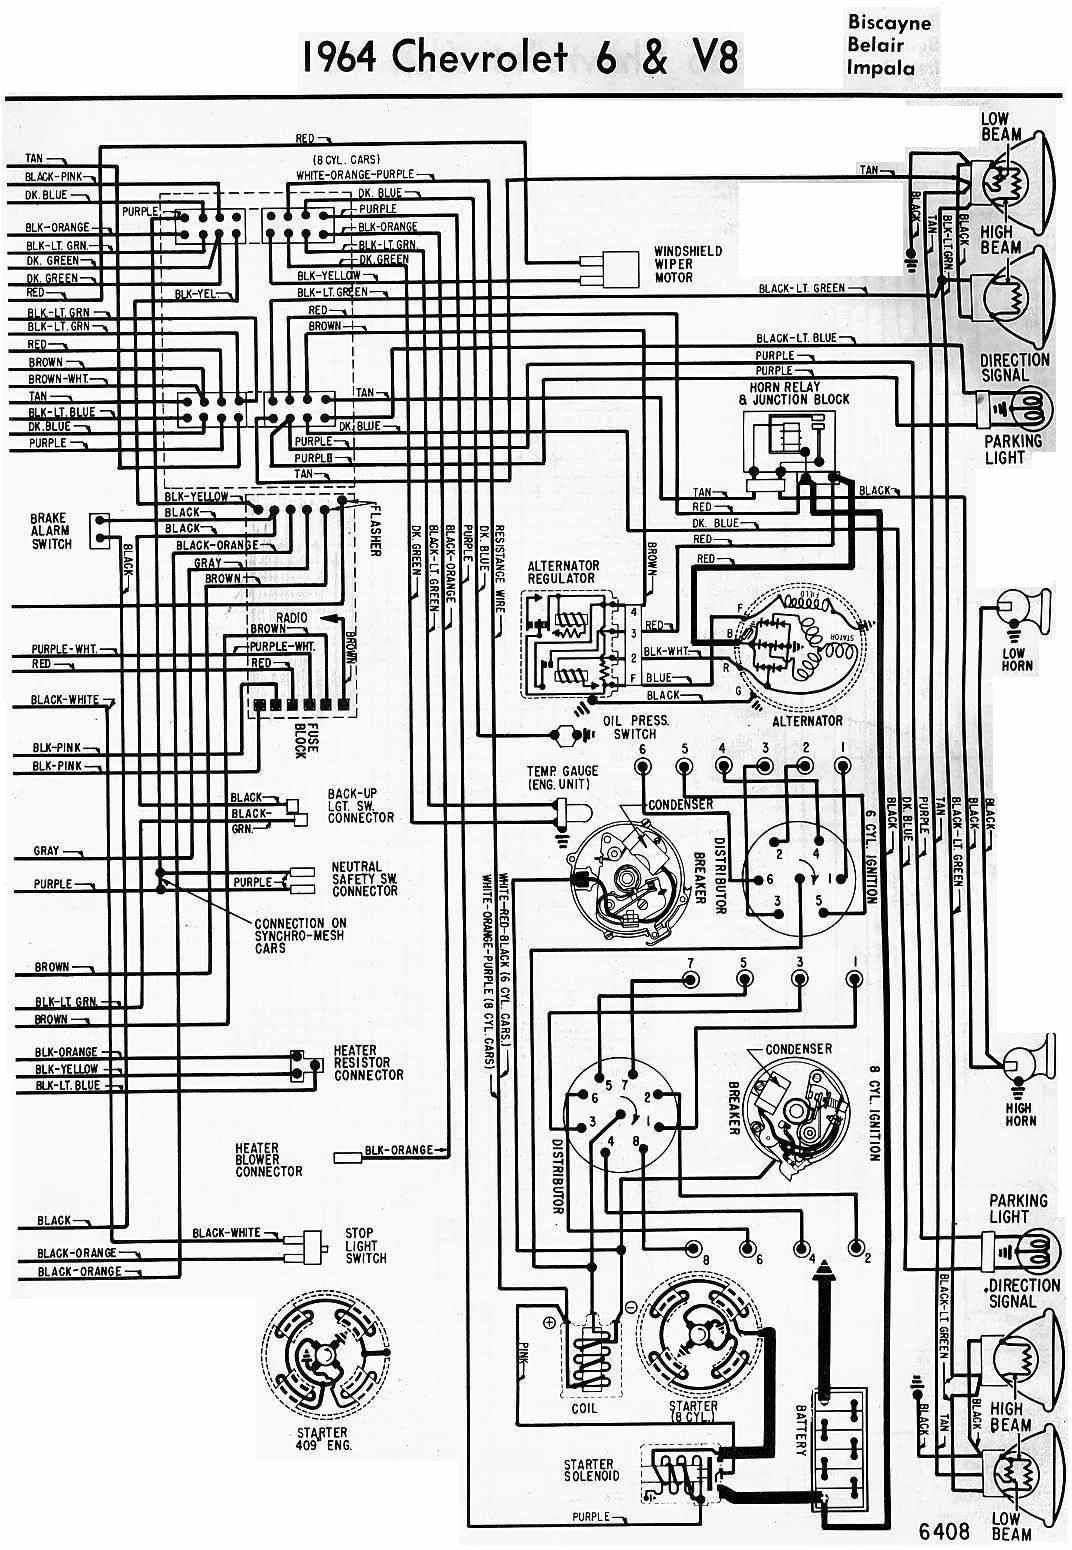 Elec Wiring Diagram : Electrical wiring diagram of chevrolet and v all